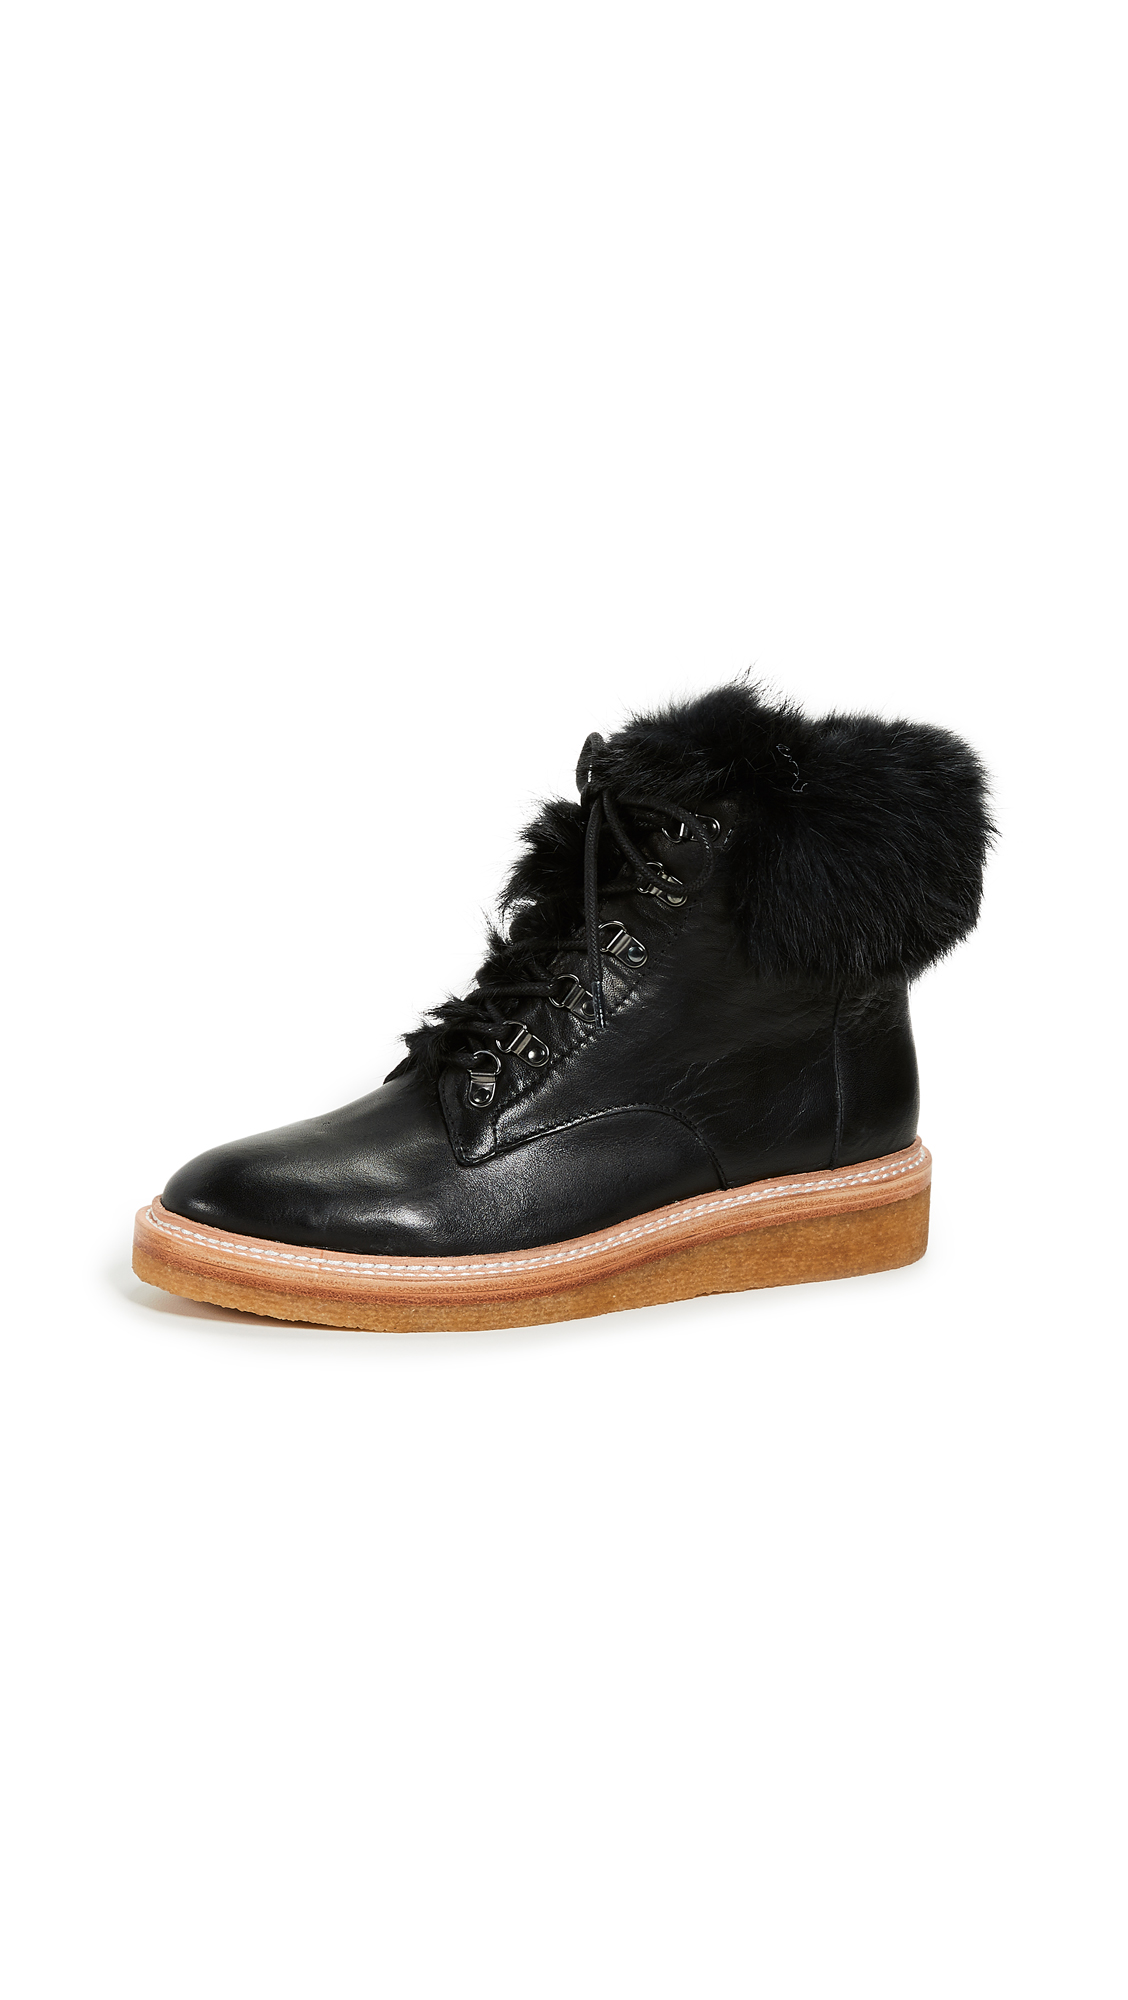 Botkier Winter Combat Boots - Black